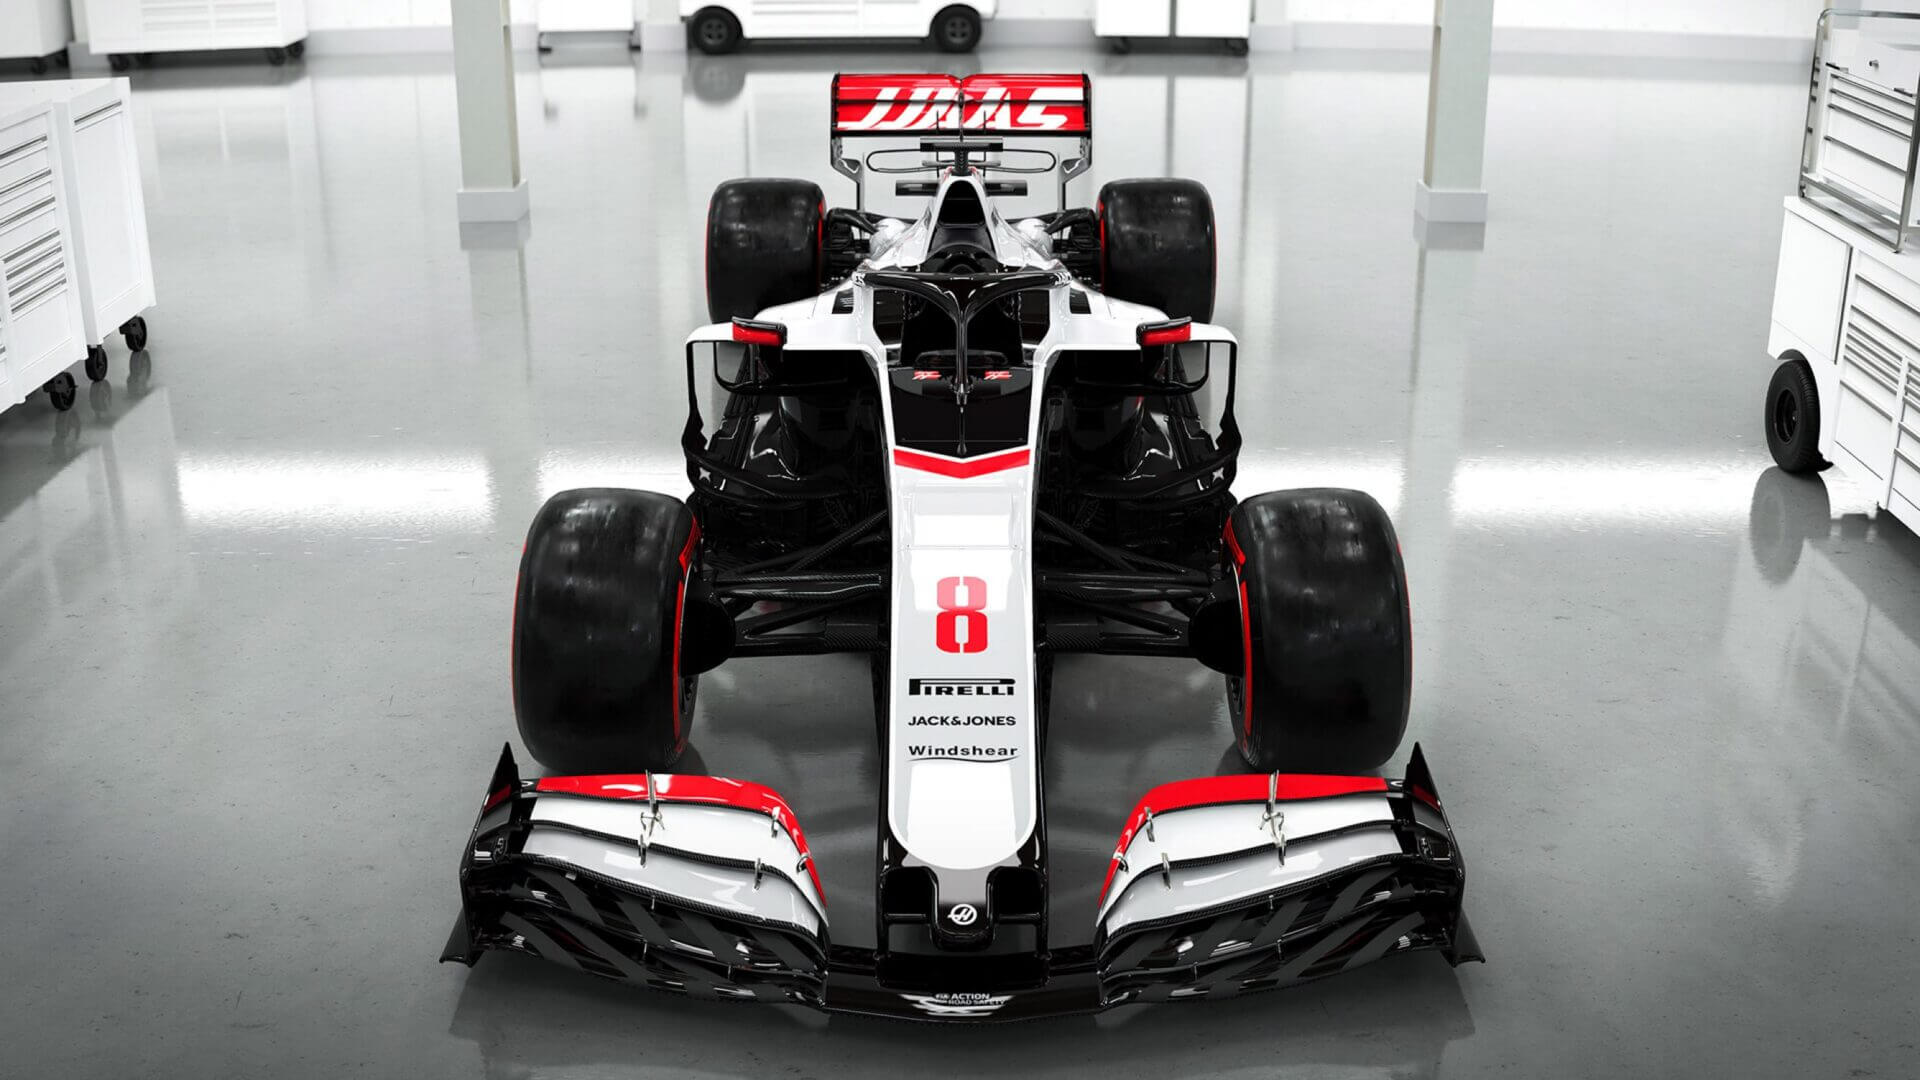 Haas Formula 1 team hopes to rebound from